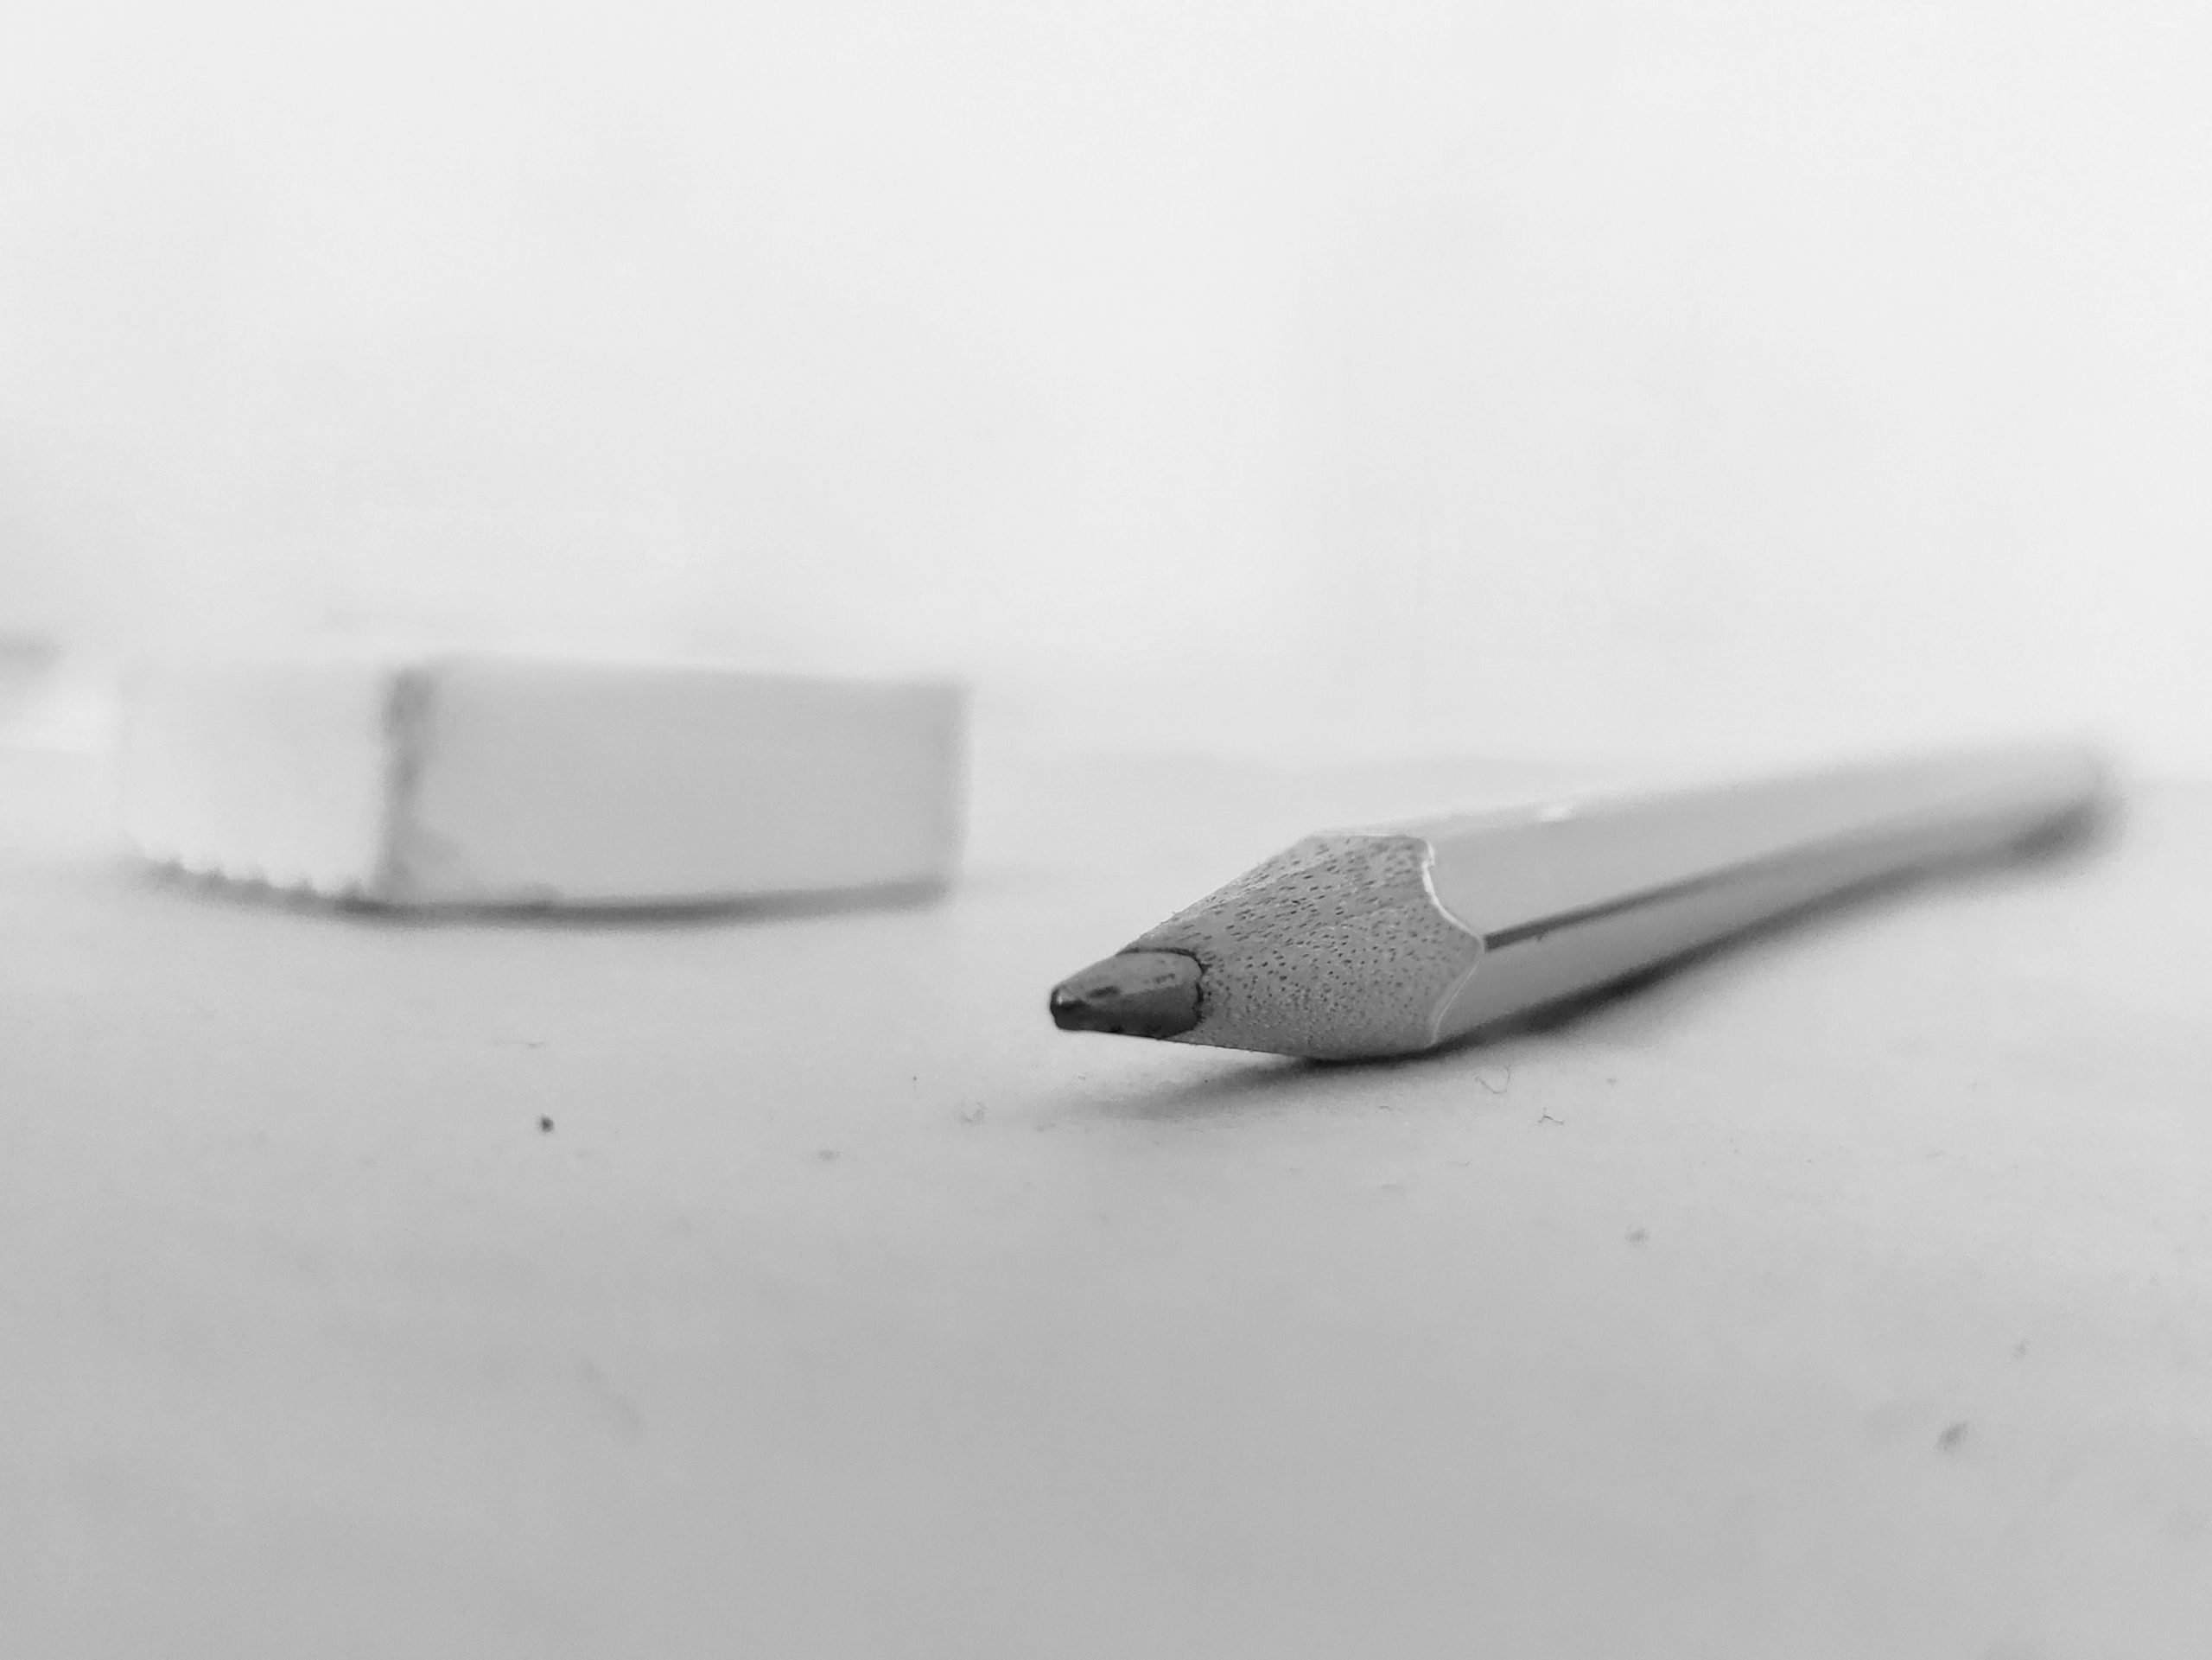 Tip of a pencil